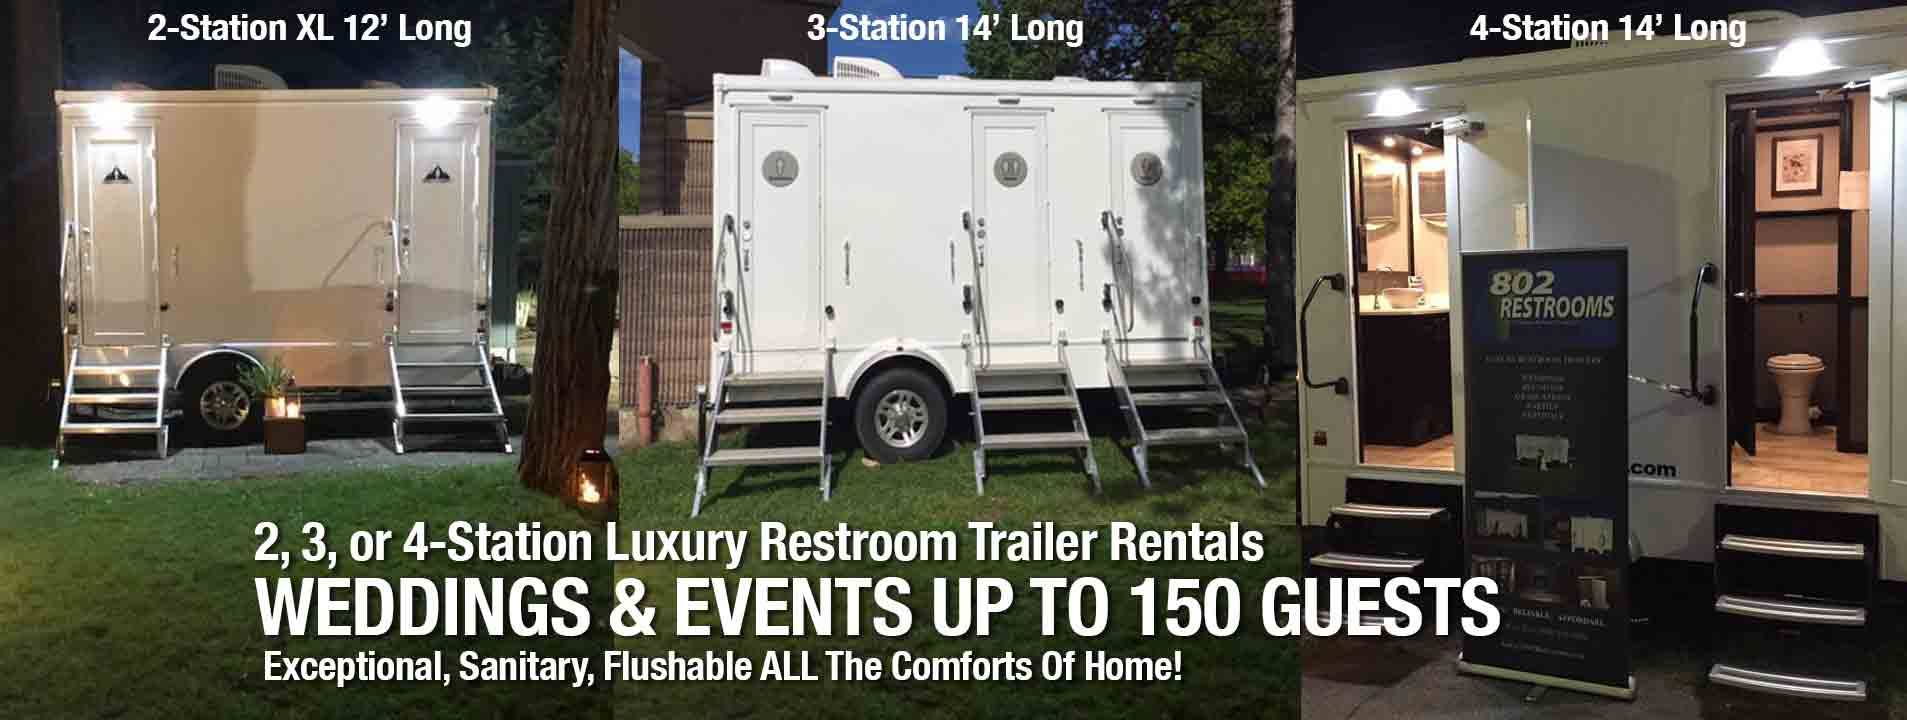 portable-luxury-restroo-trailers-2-3-4-station.jpg